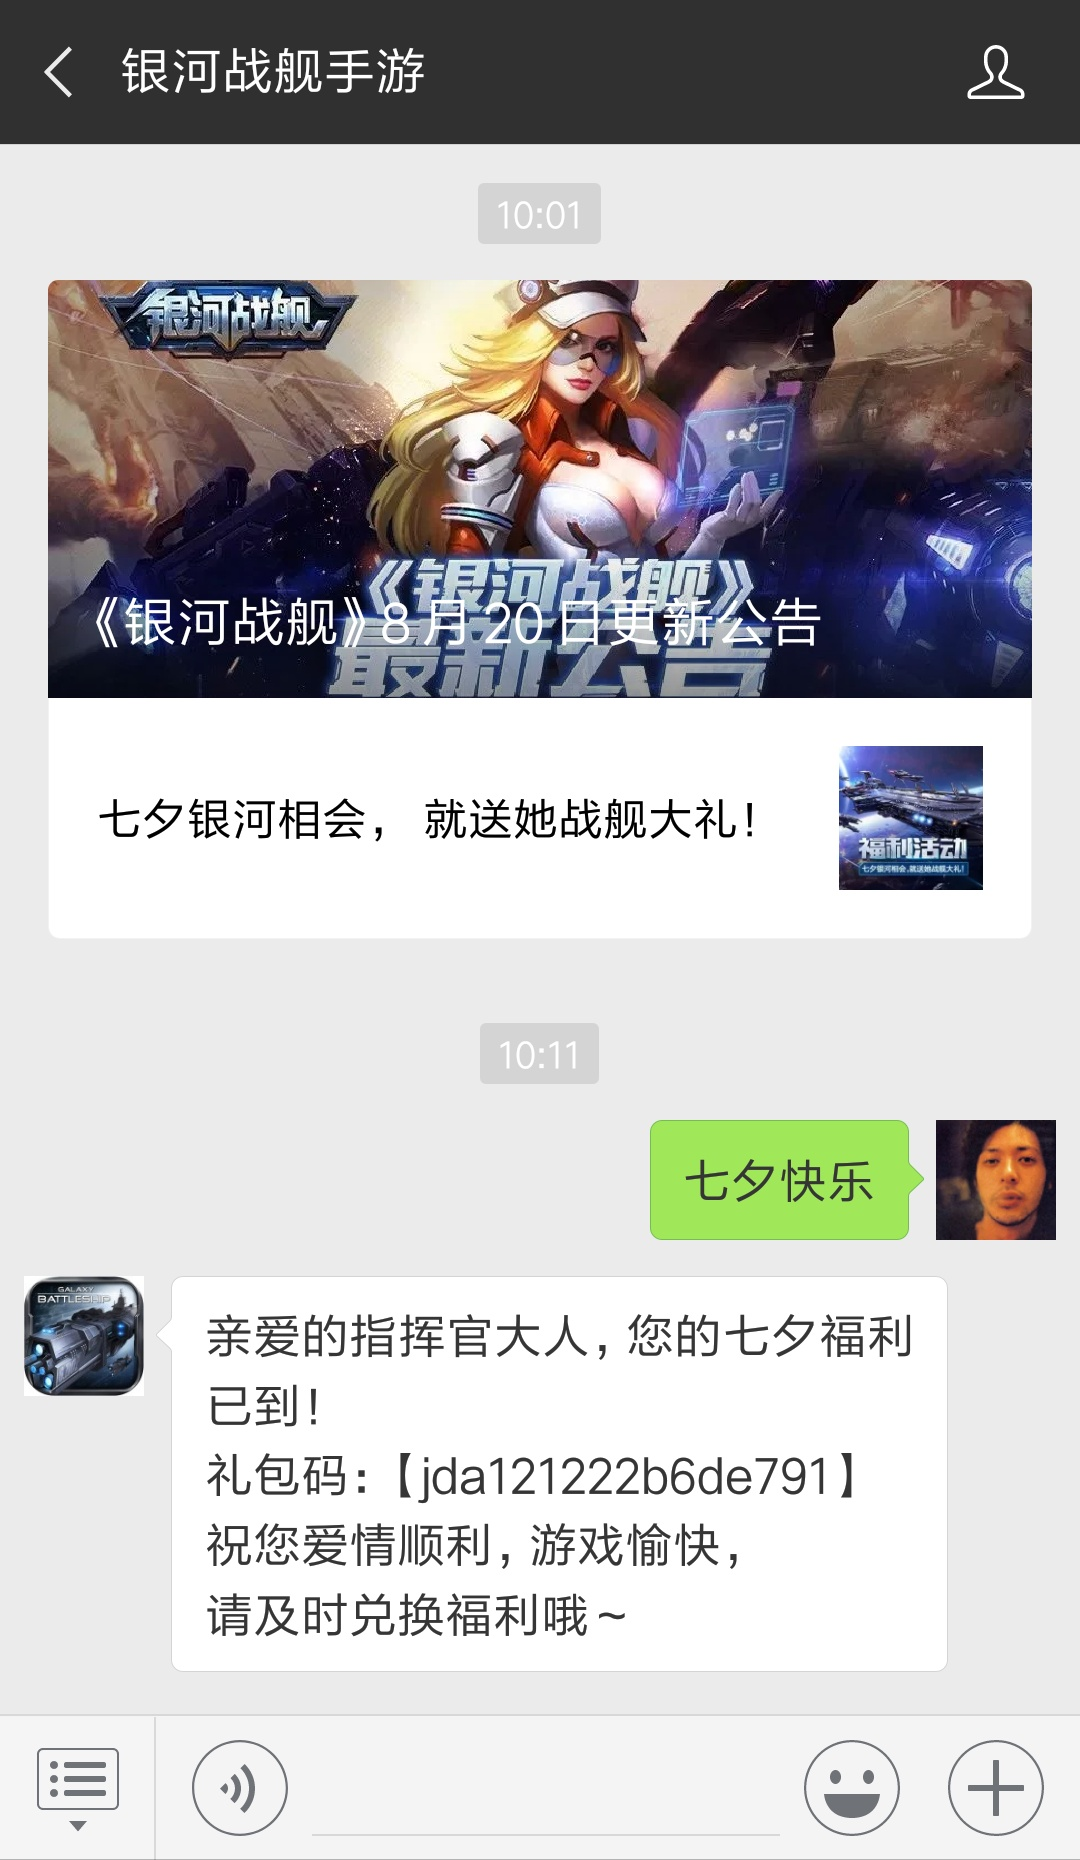 Screenshot_2018-08-17-13-57-28-625_com.tencent.mm_[B@1af5ad5.png